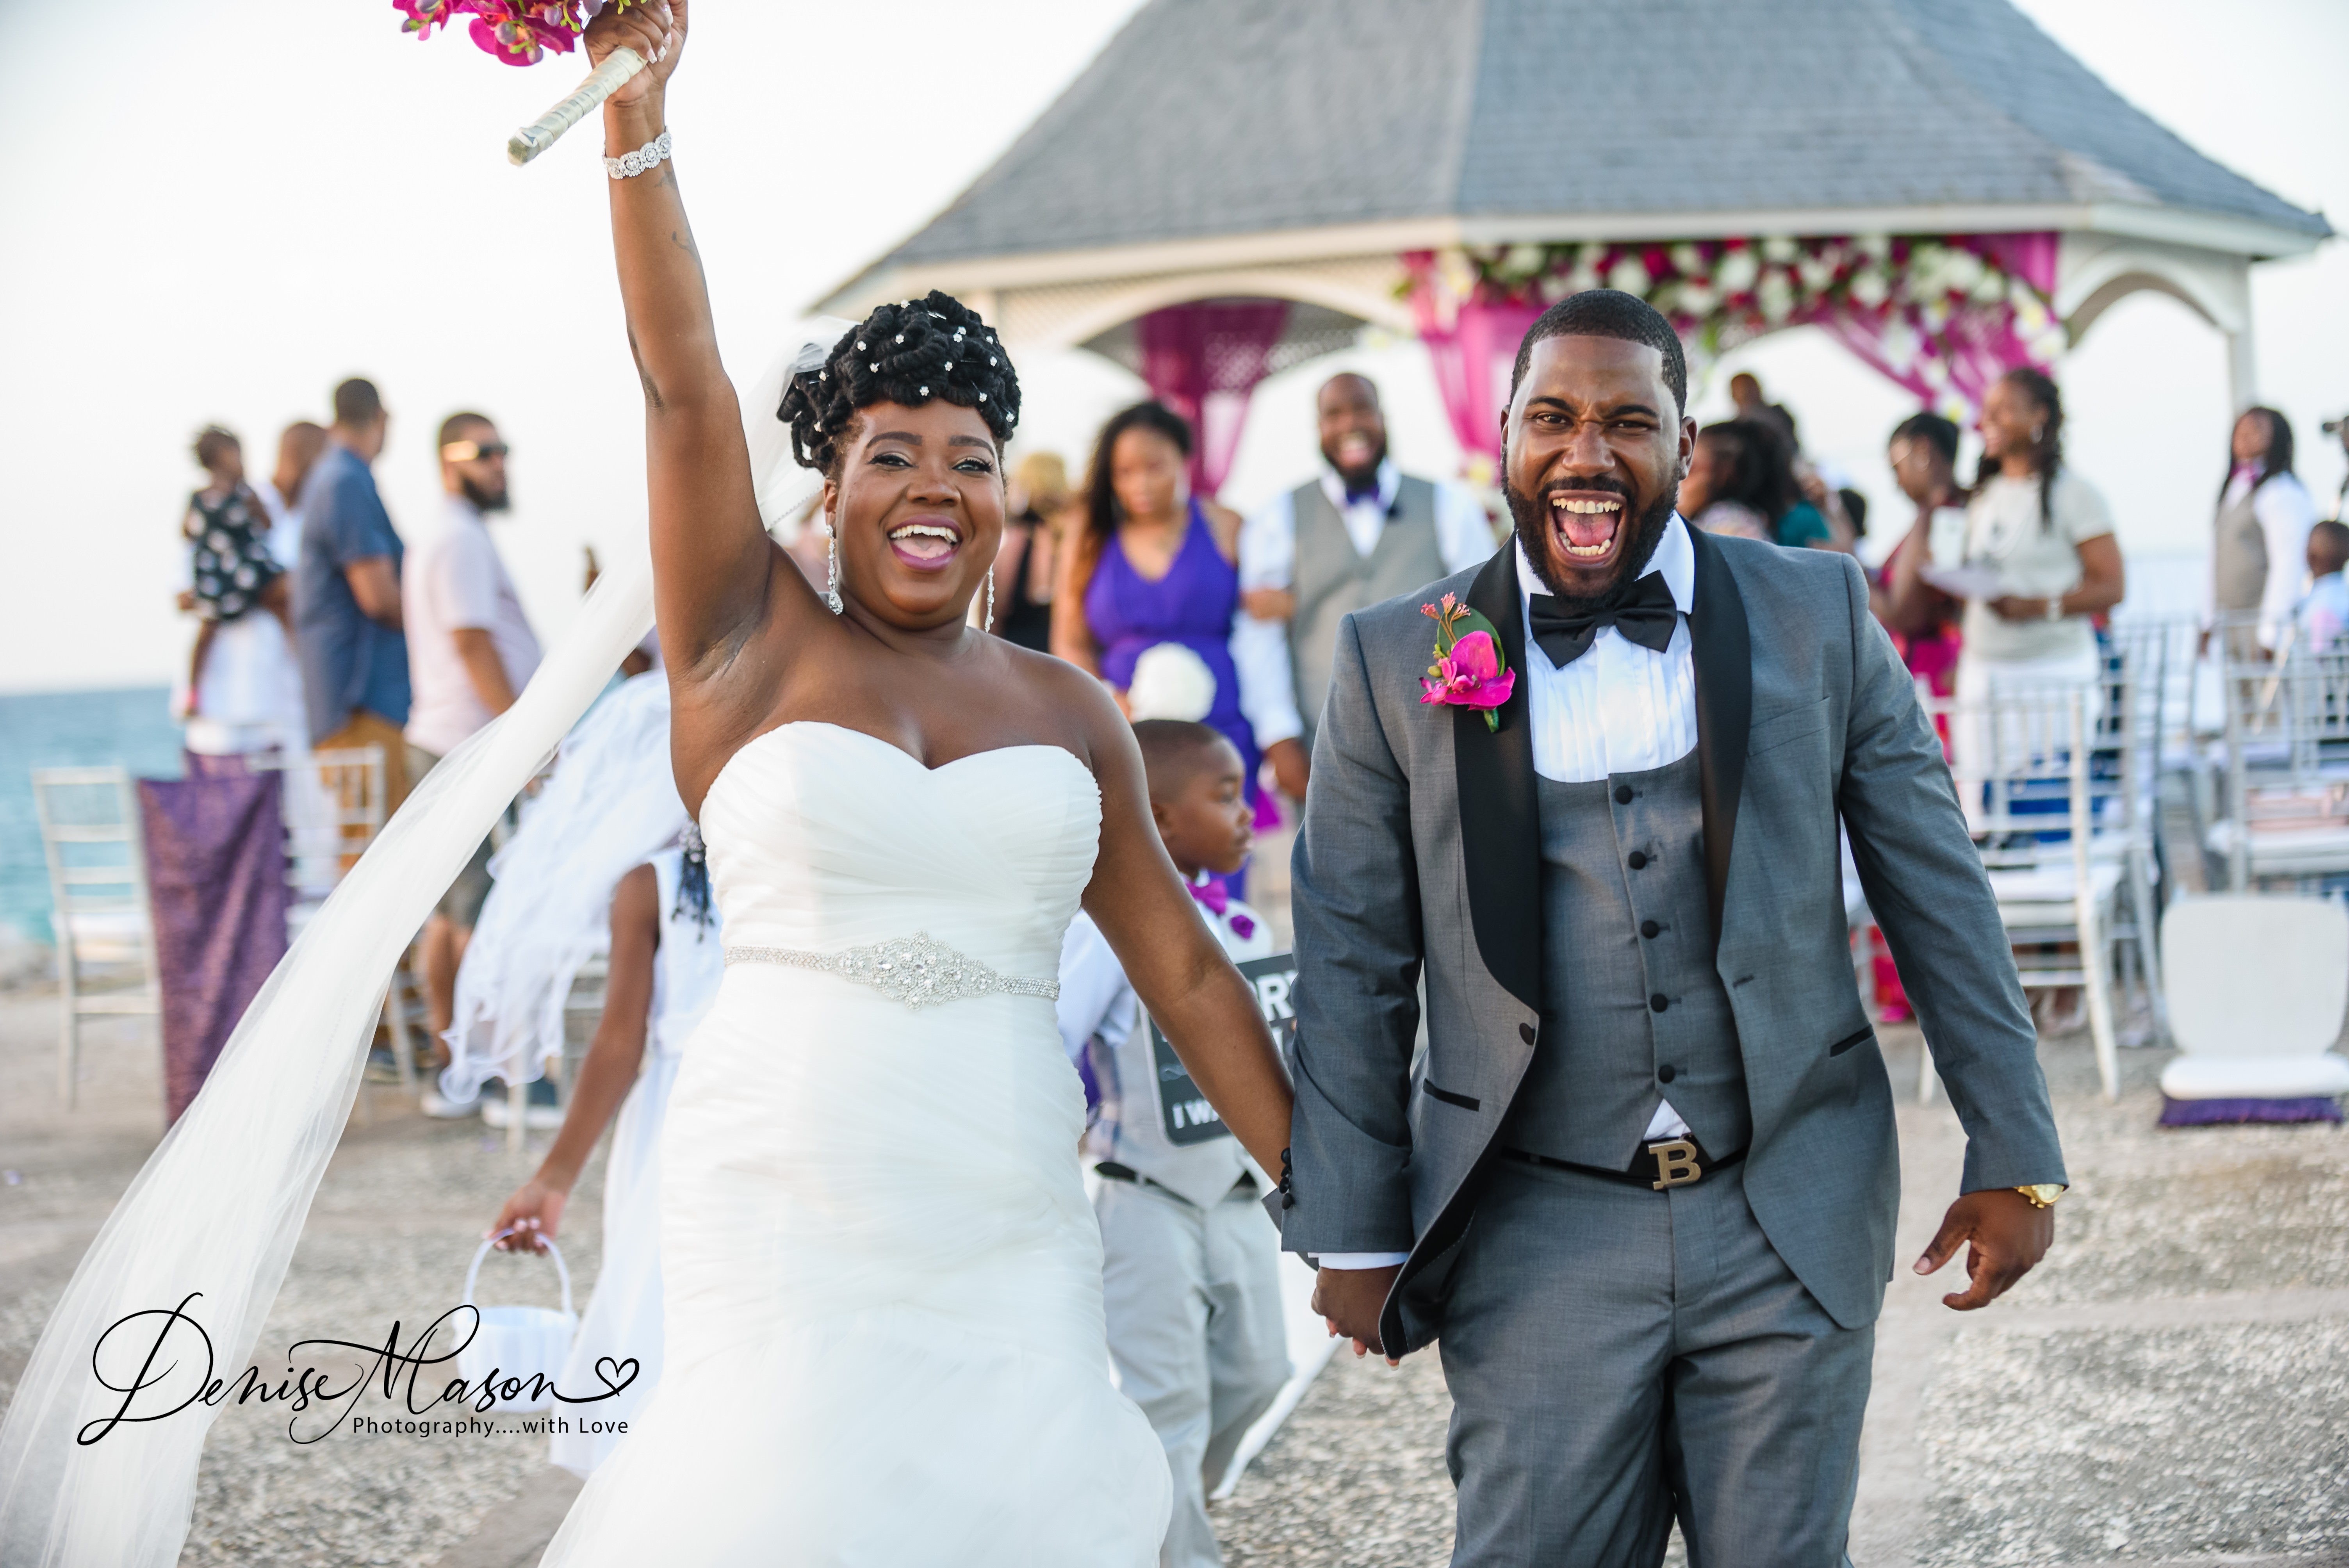 Wedding Ceremony at Silver Sands Duncans Trelawny Jamaica